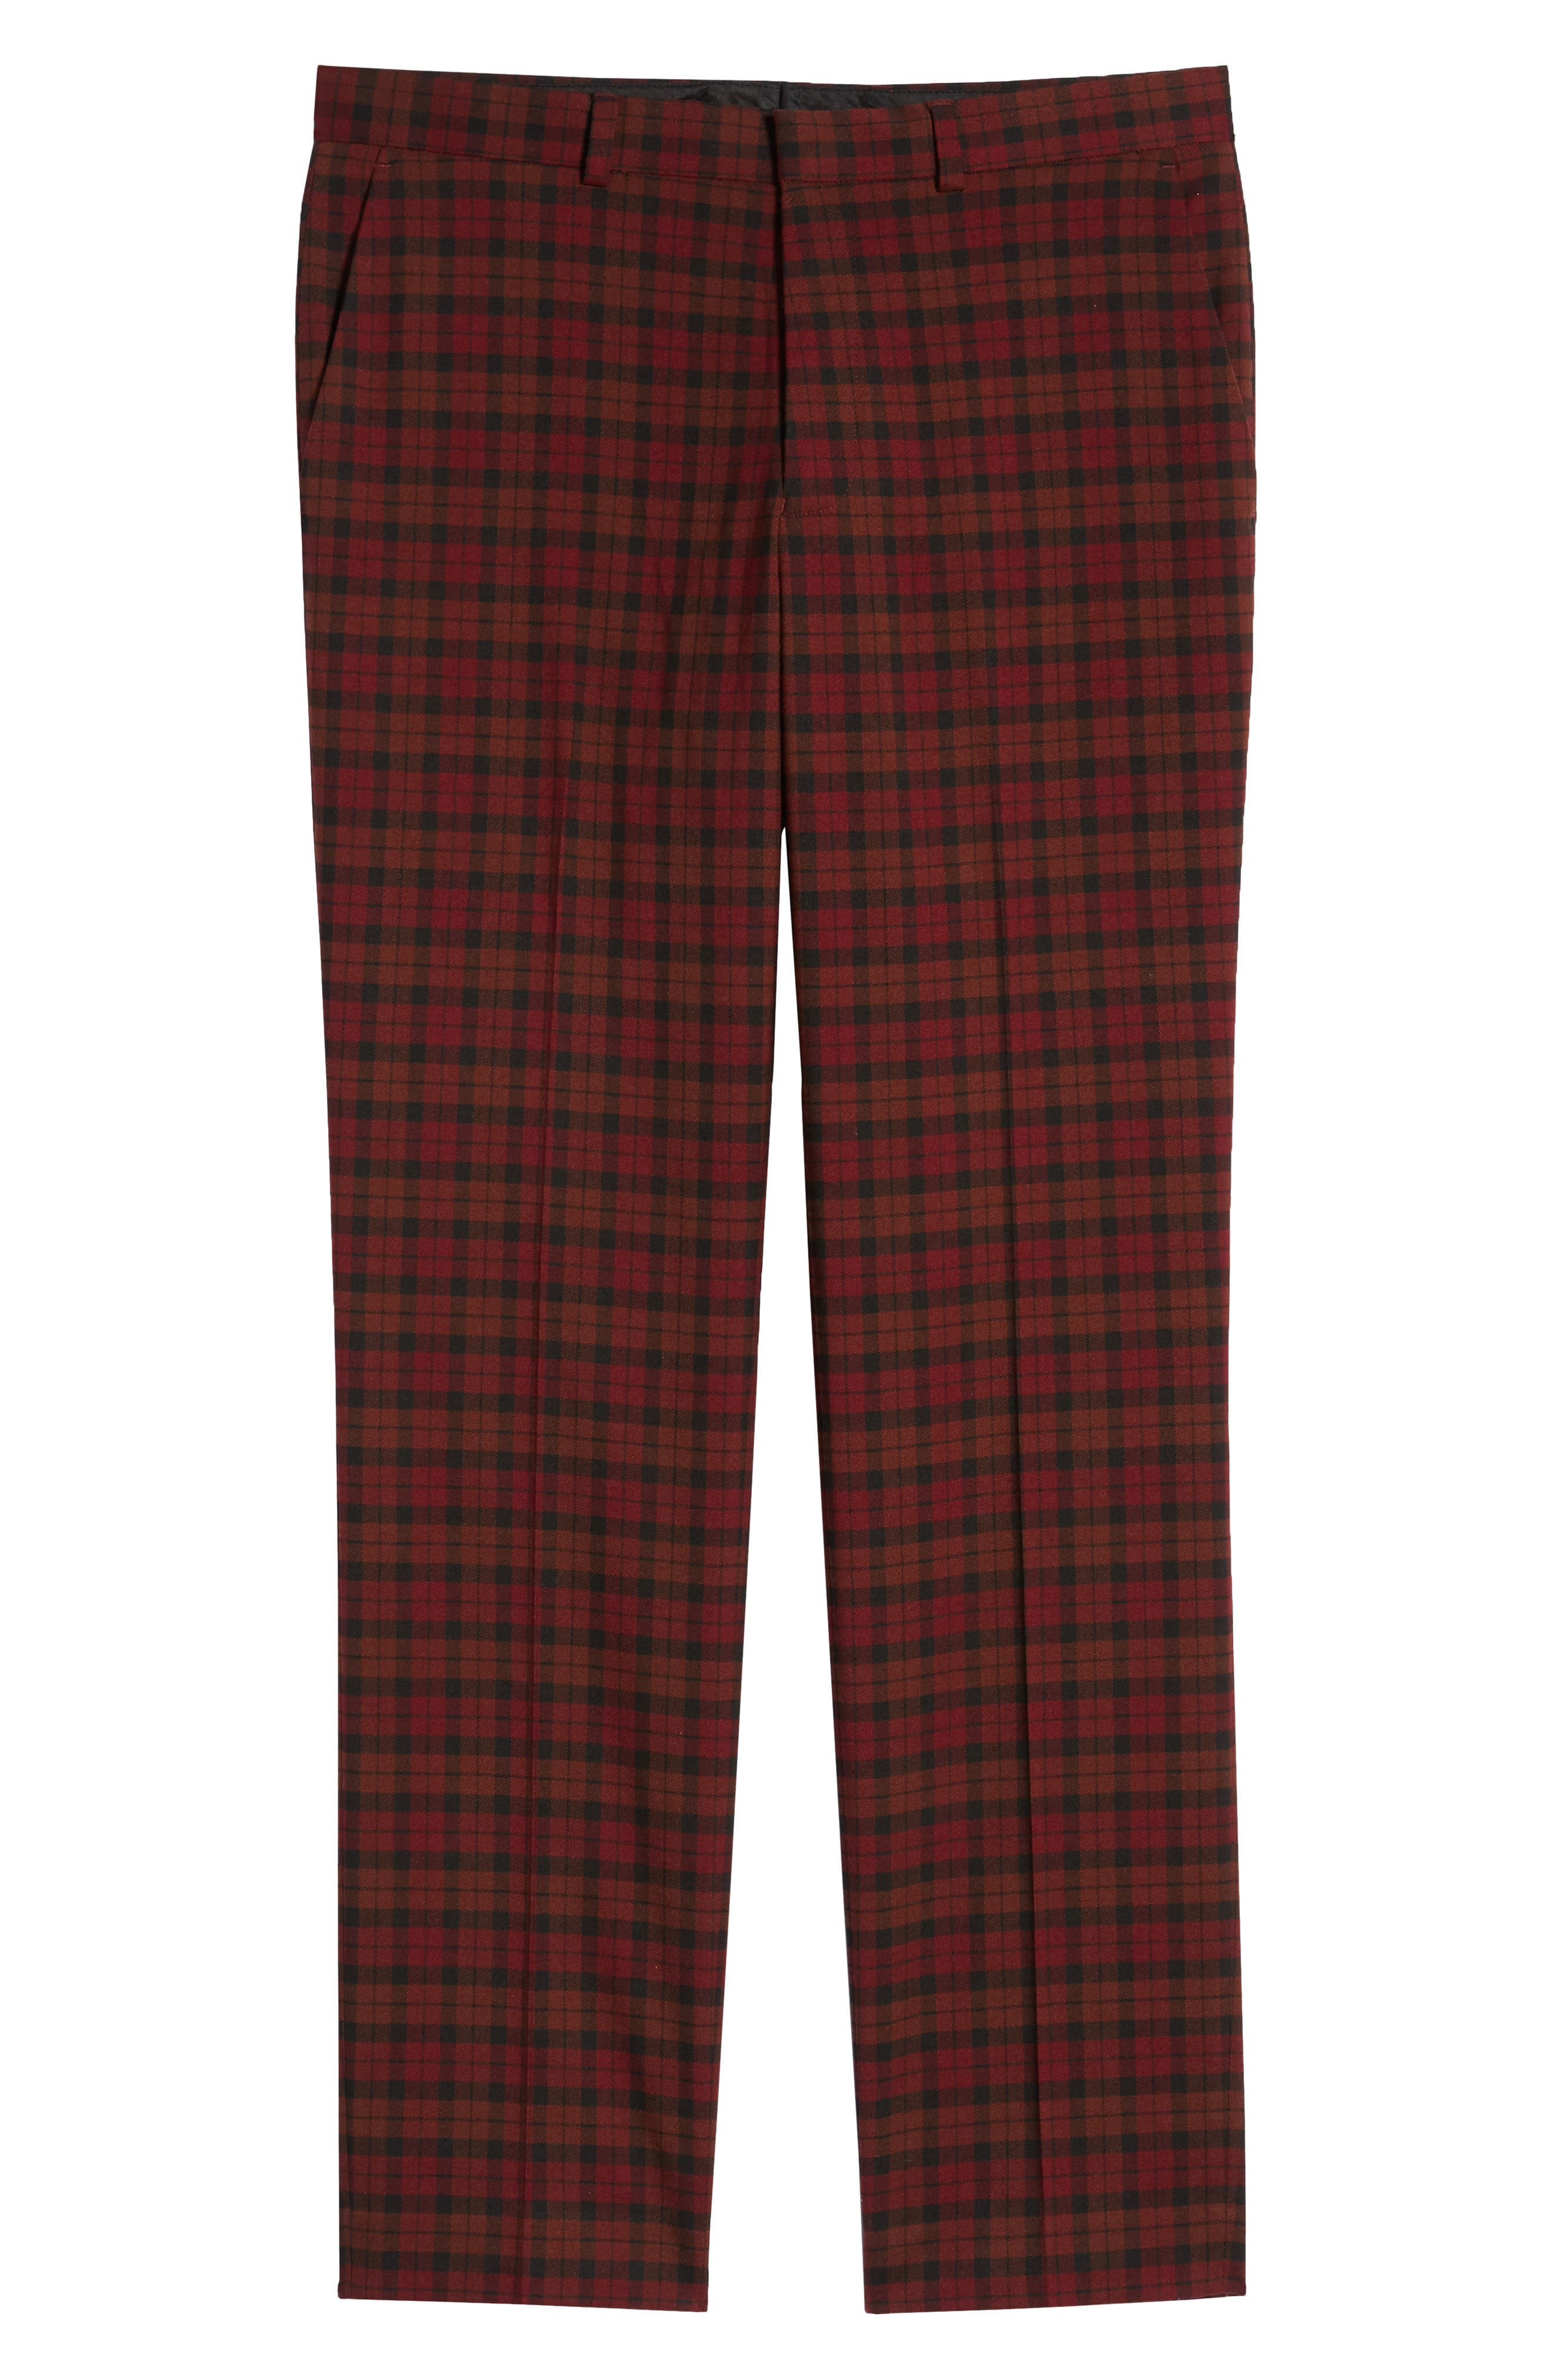 Thorn Slim Fit Trousers,                             Alternate thumbnail 6, color,                             RED MULTI